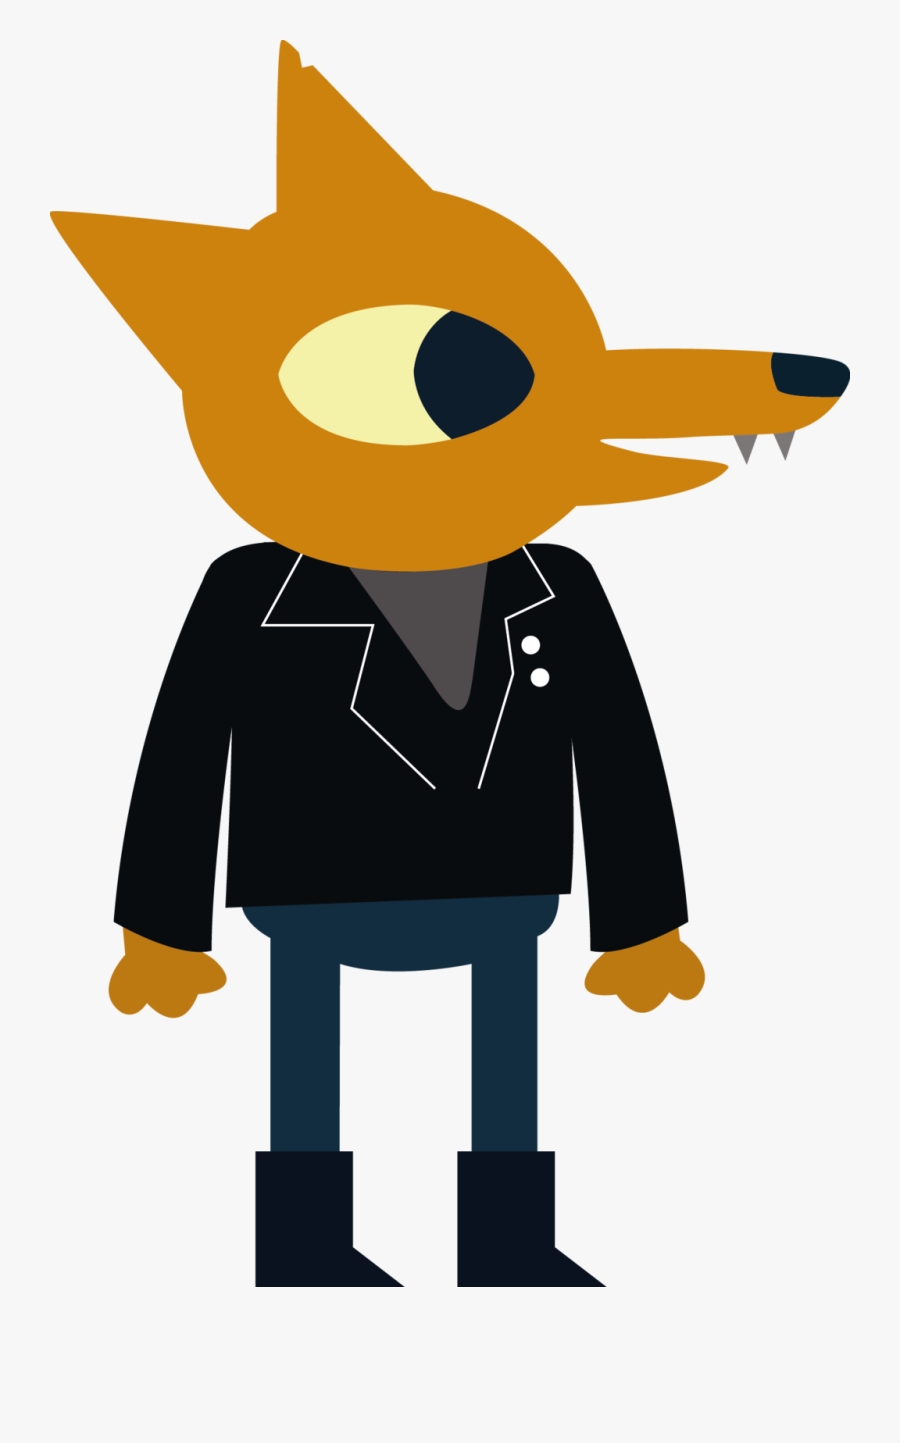 Night In The Woods Png Transparent - Gregg Night In The Woods, Transparent Clipart